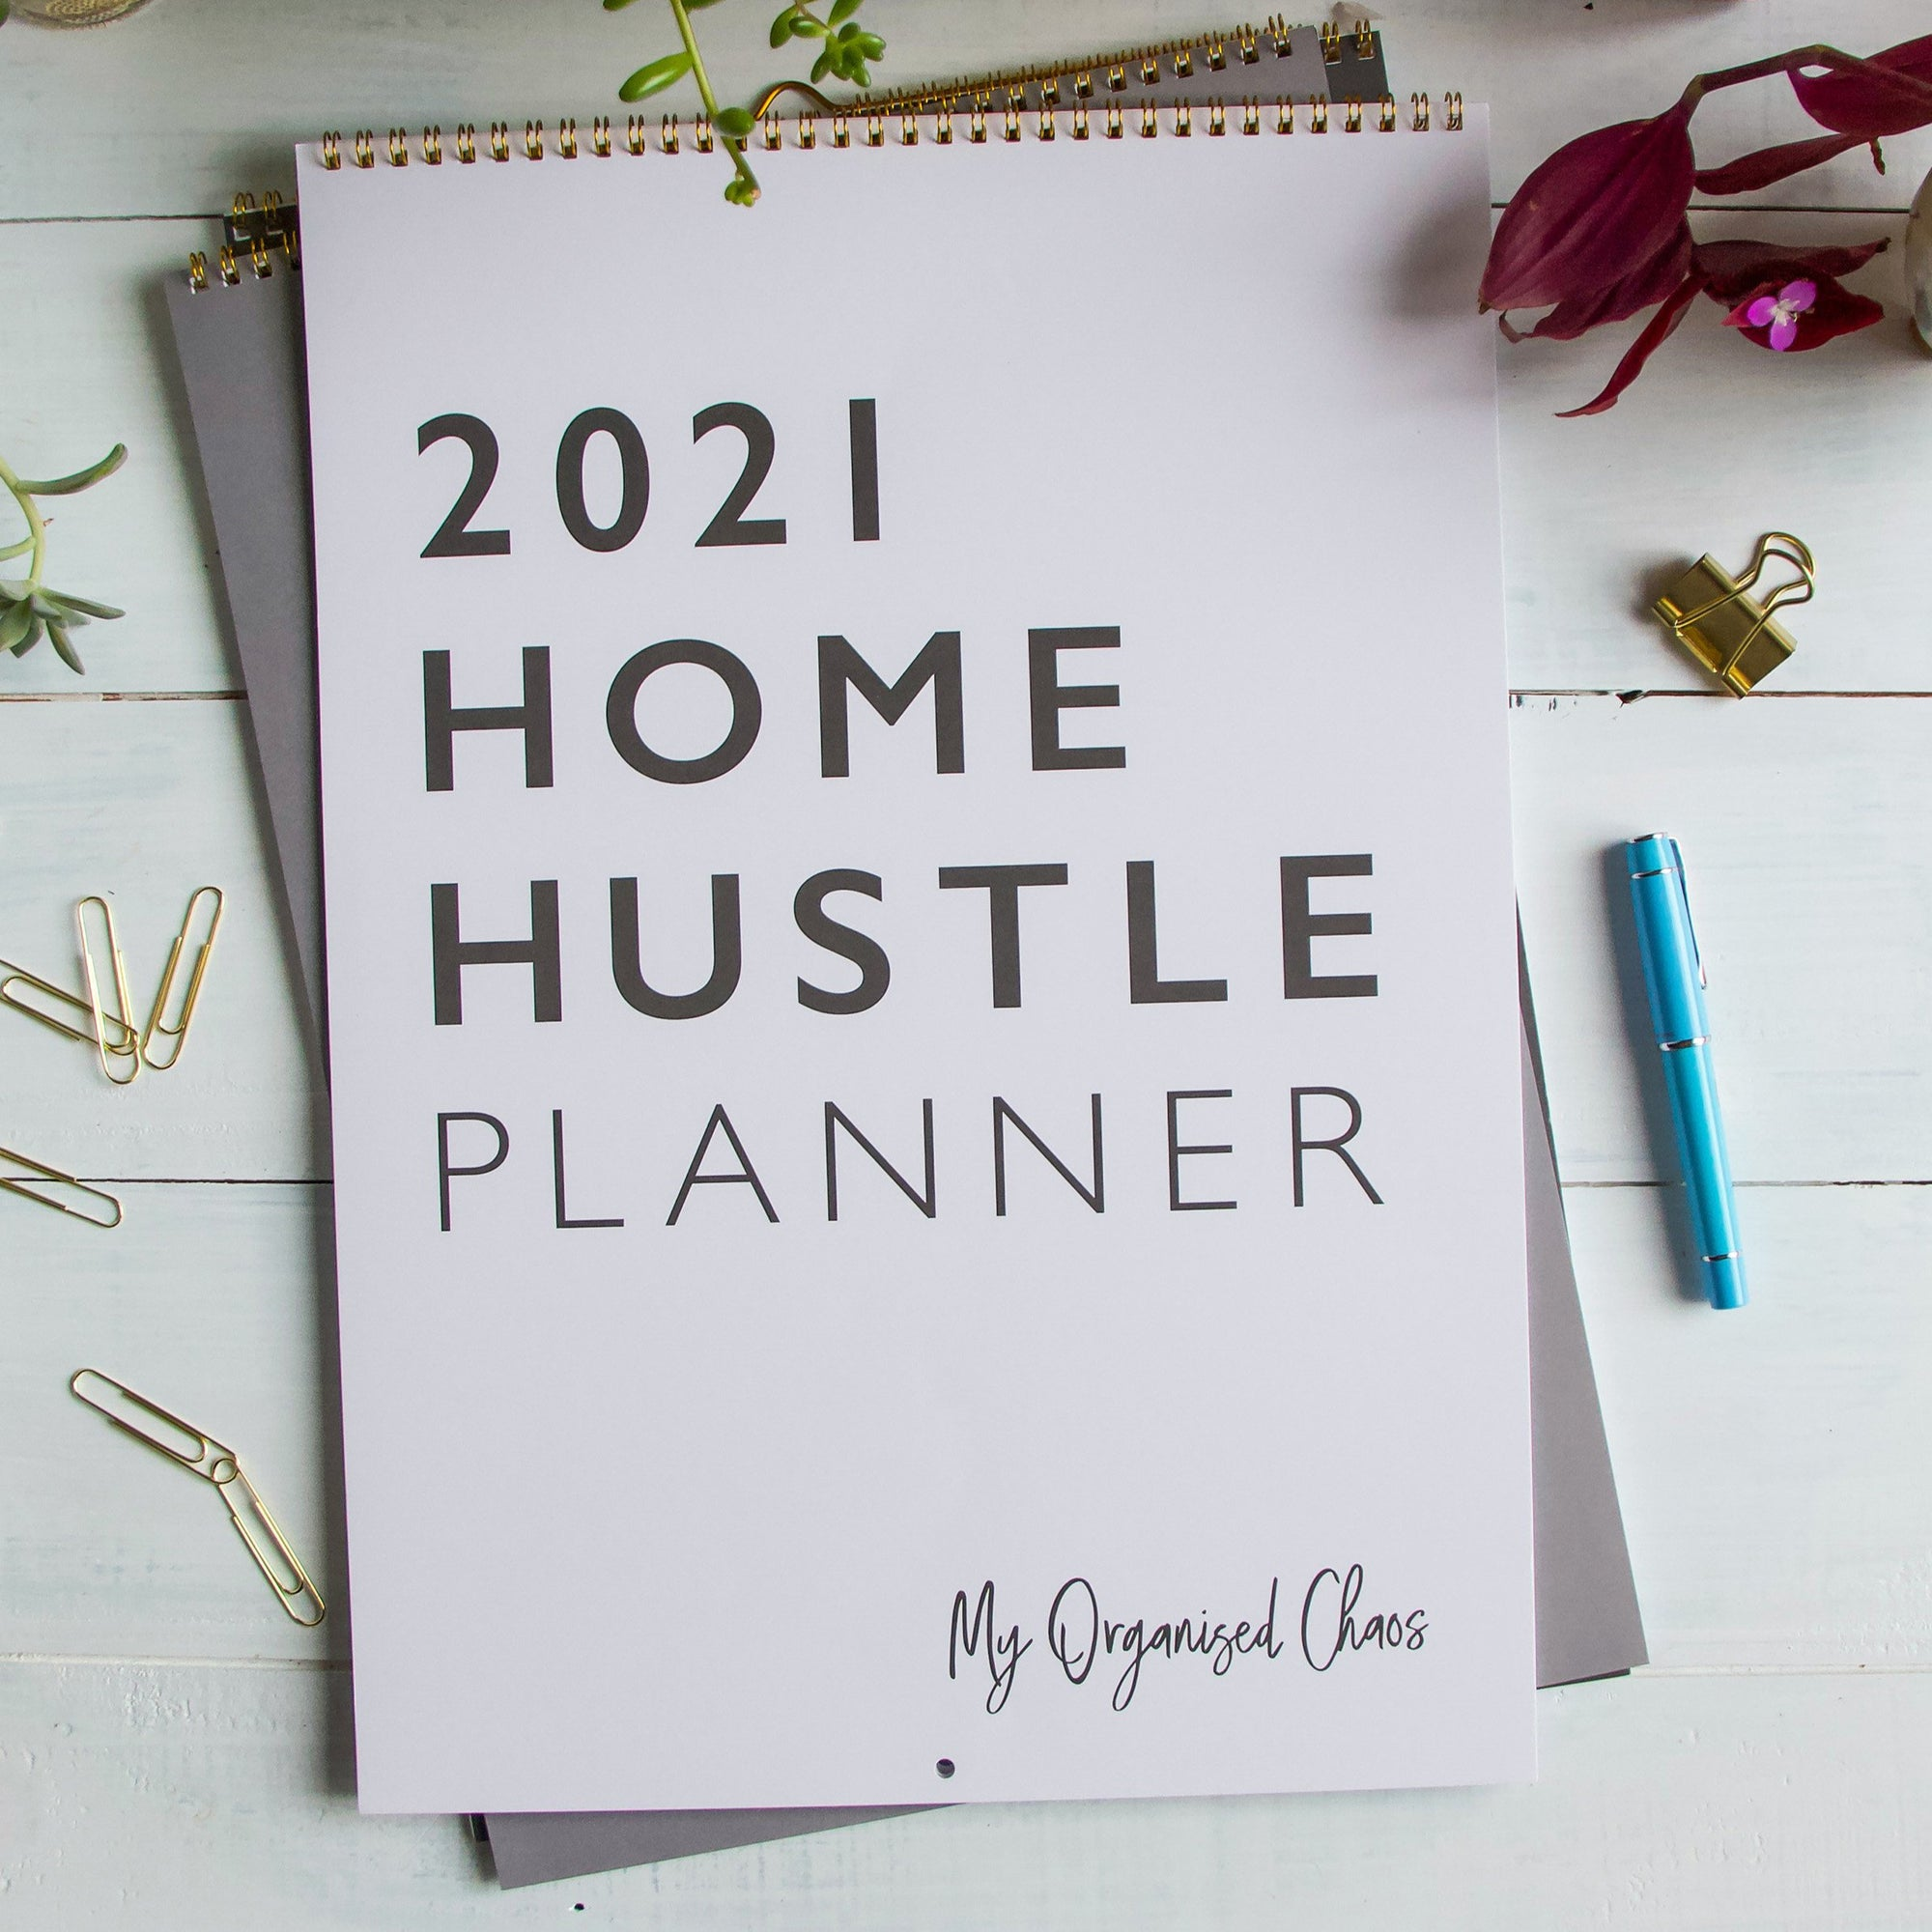 2021 Home Hustle Planner